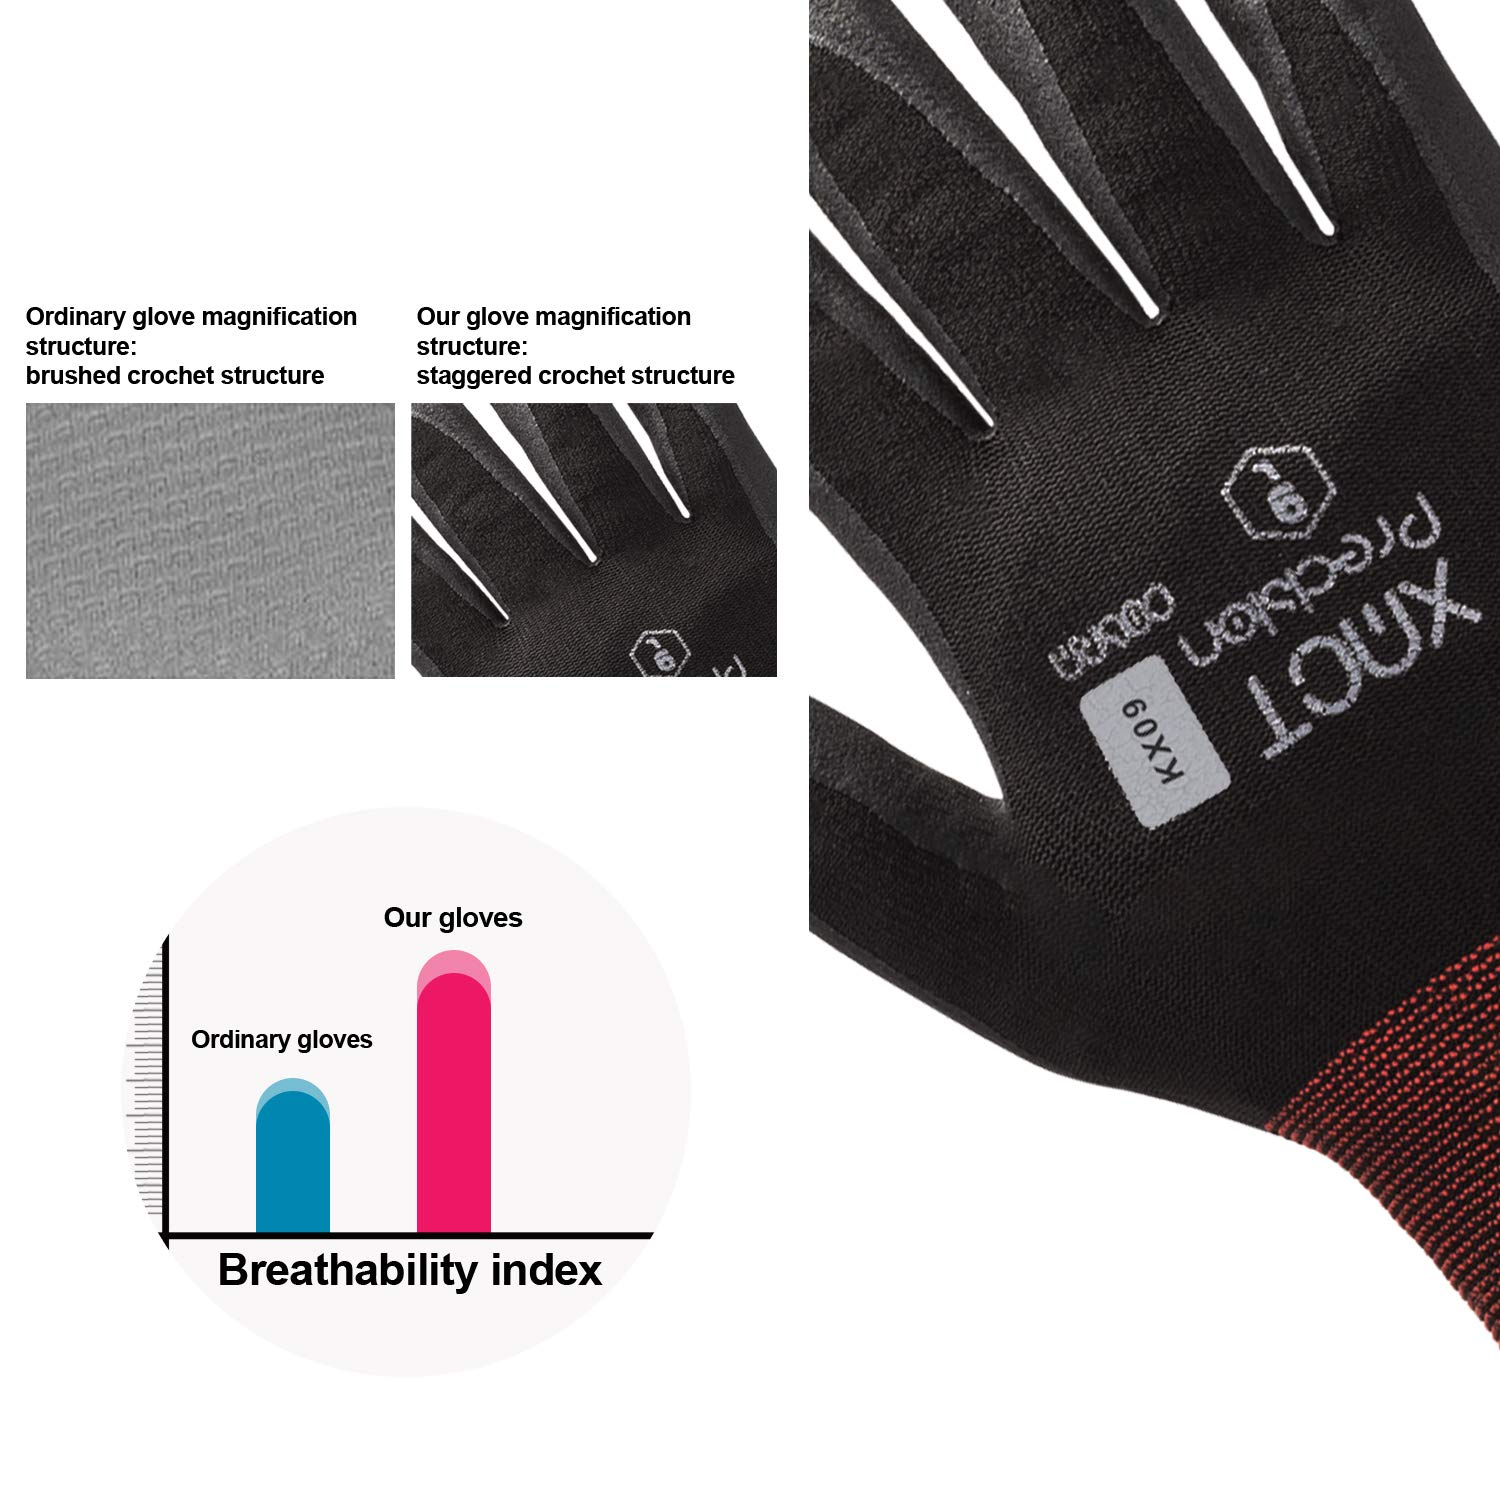 OCGIG Ambidextrous Safety Cut Proof Stab Resistant Stainless Steel Wire Butcher Glove High Performance Level 5 Protection,Size L